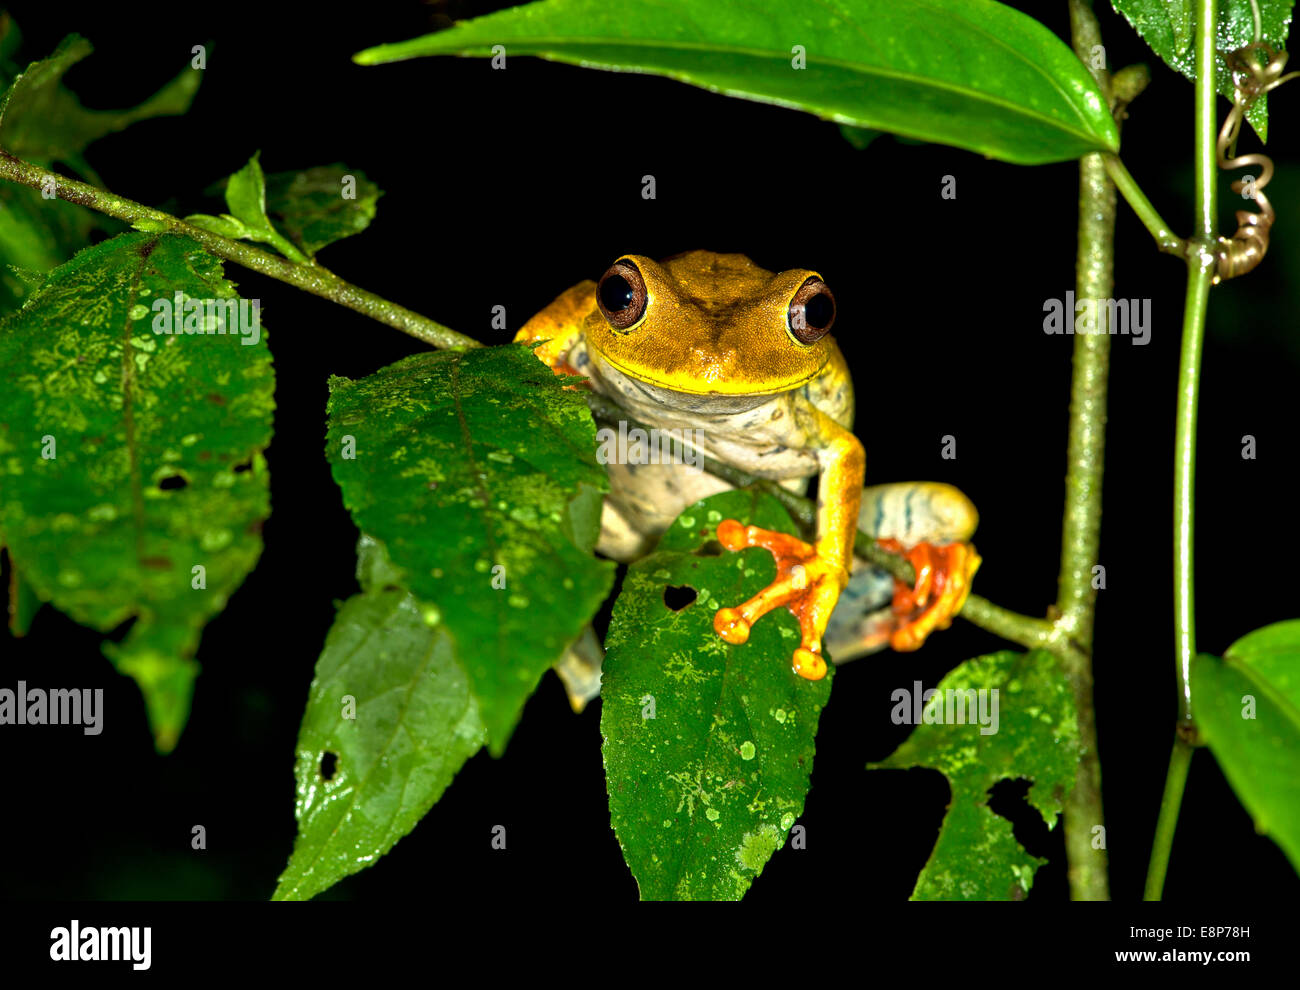 Map tree frog (Hypsiboas geographicus), in habitat, Hylidae family, Tambopata Nature Reserve, Madre de Dios region, - Stock Image